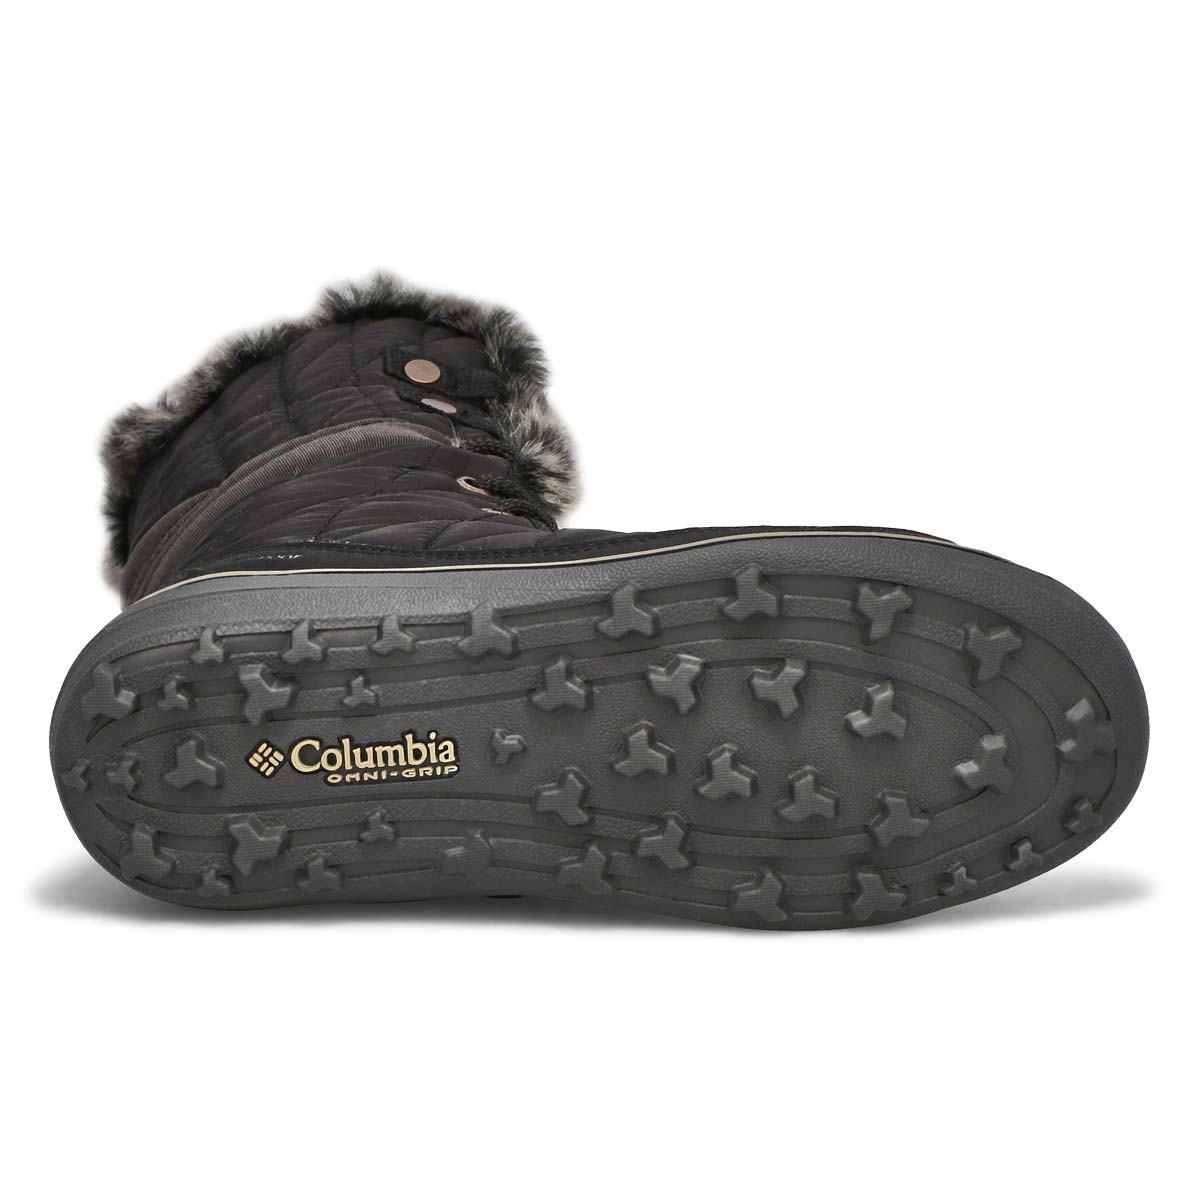 Lds Heavenly OmniHeat blk tall snow boot